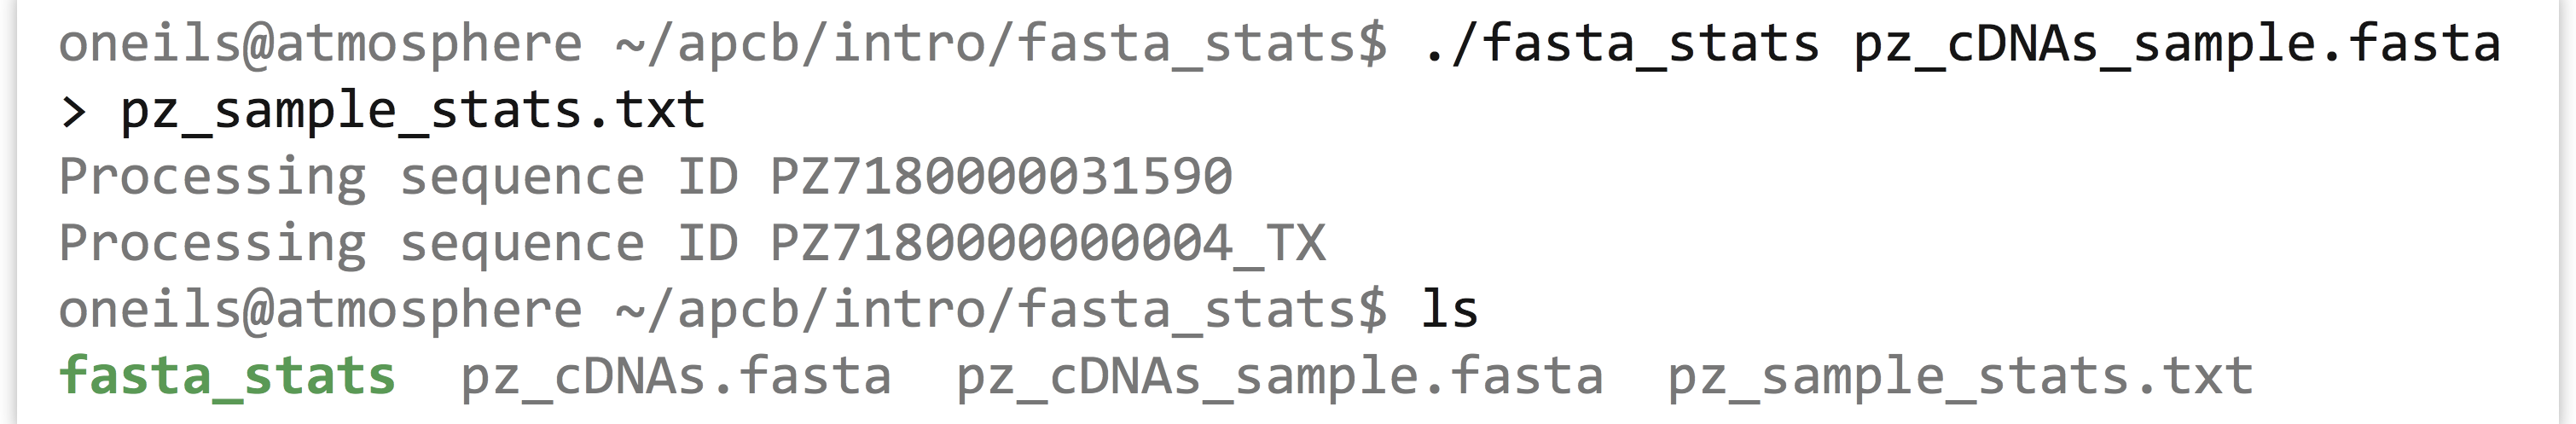 I.8_3_unix_97_fasta_stats_sample_redirect